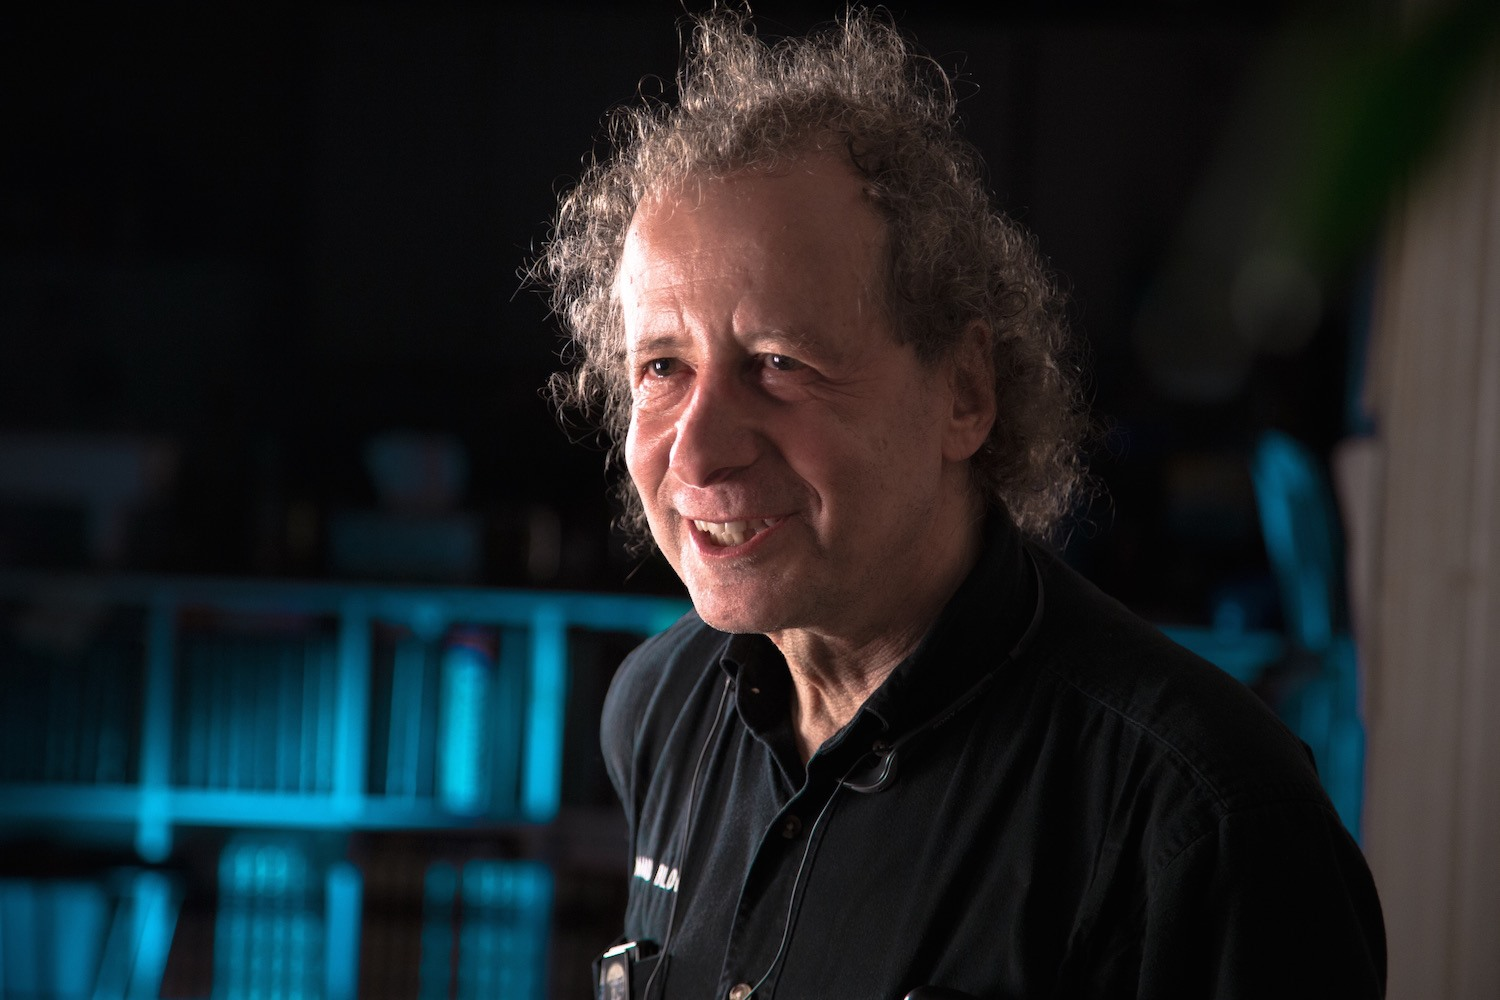 A conversation with Howard Bloom, for The Postil Magazine